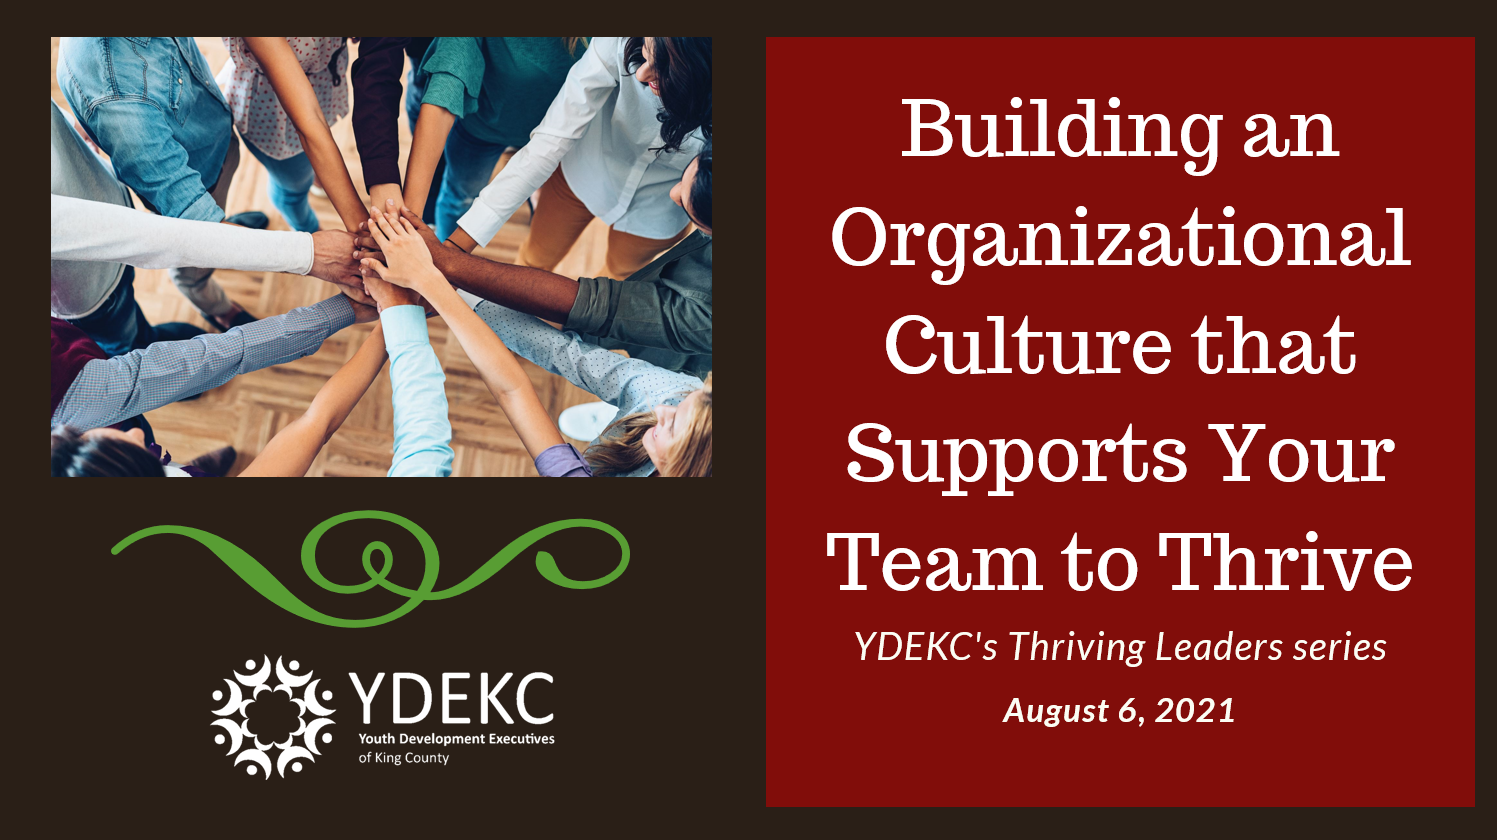 building an organizational culture that supports your team to thrive! YDEKC's Thriving Leaders Series, August 6, 2021